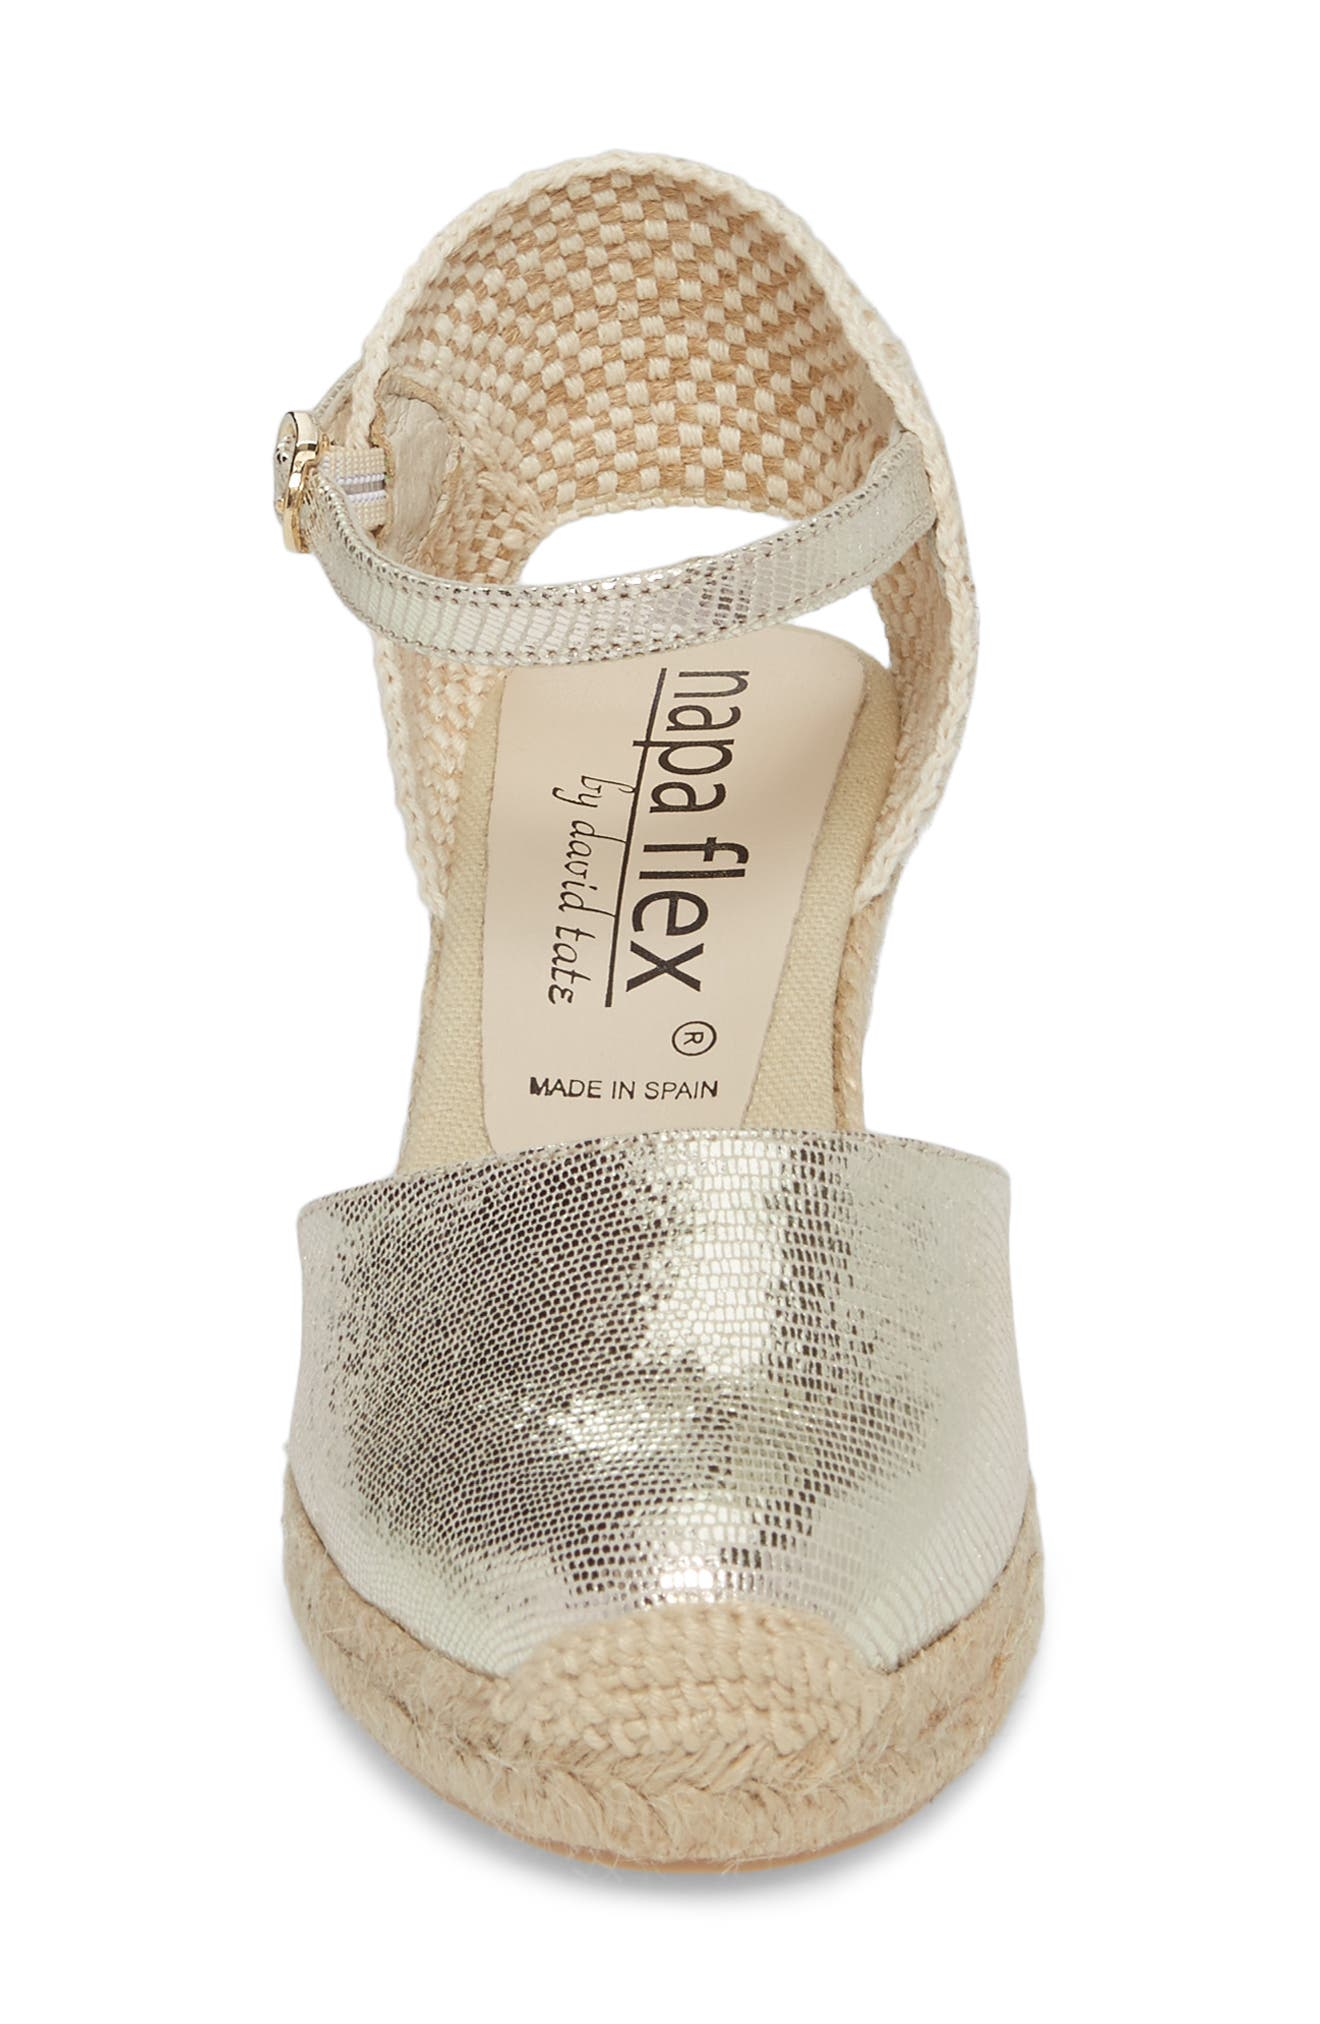 Europa Wedge Sandal,                             Alternate thumbnail 4, color,                             Gold Lizard Printed Leather